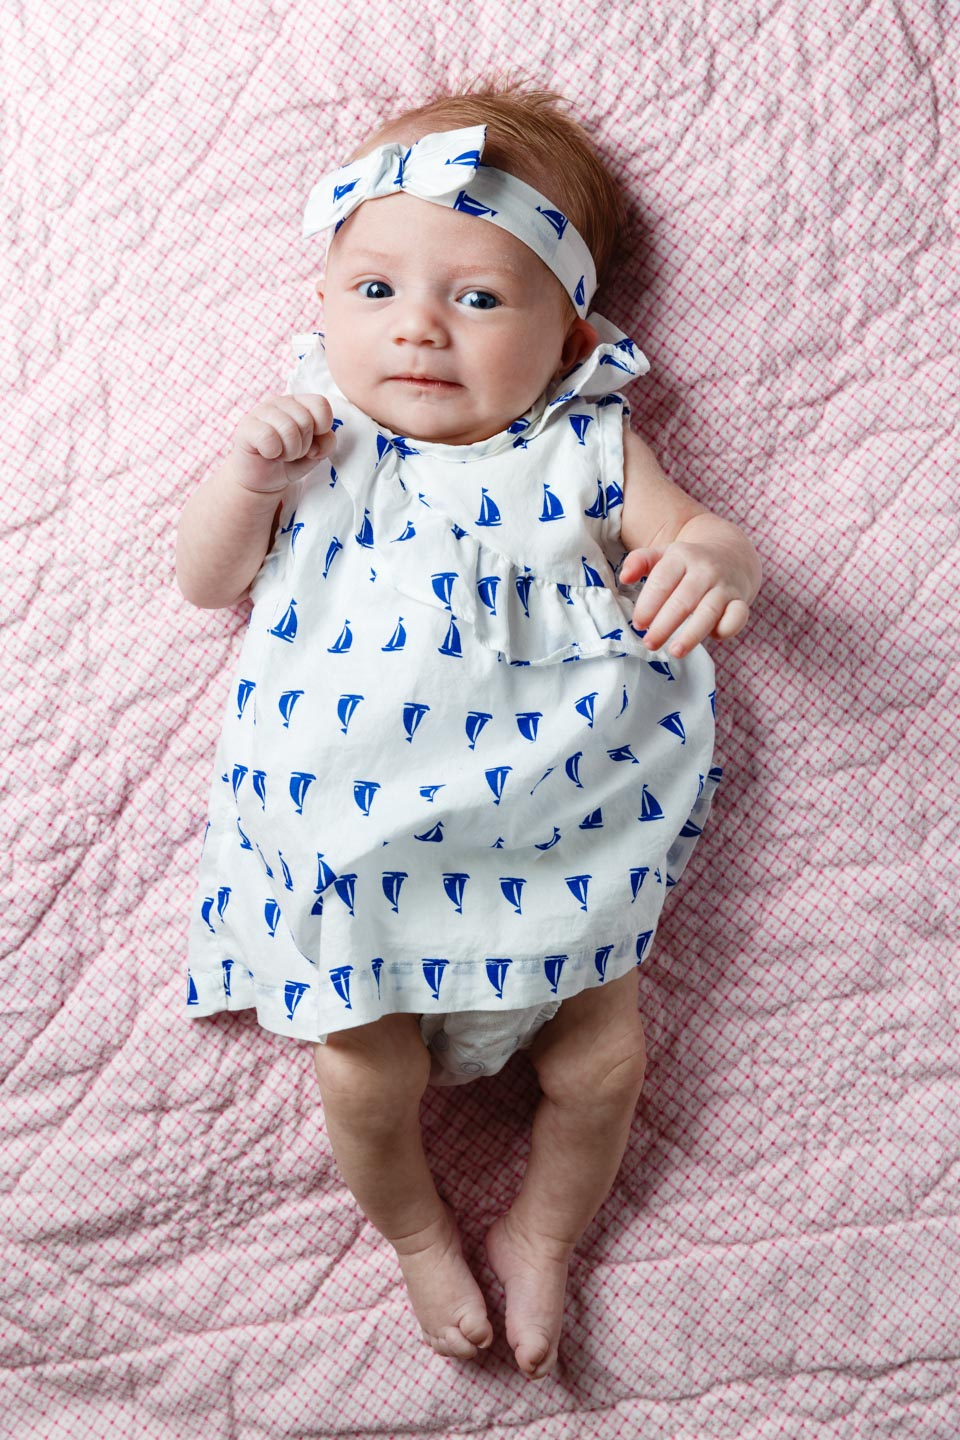 Modeling different baby outfits